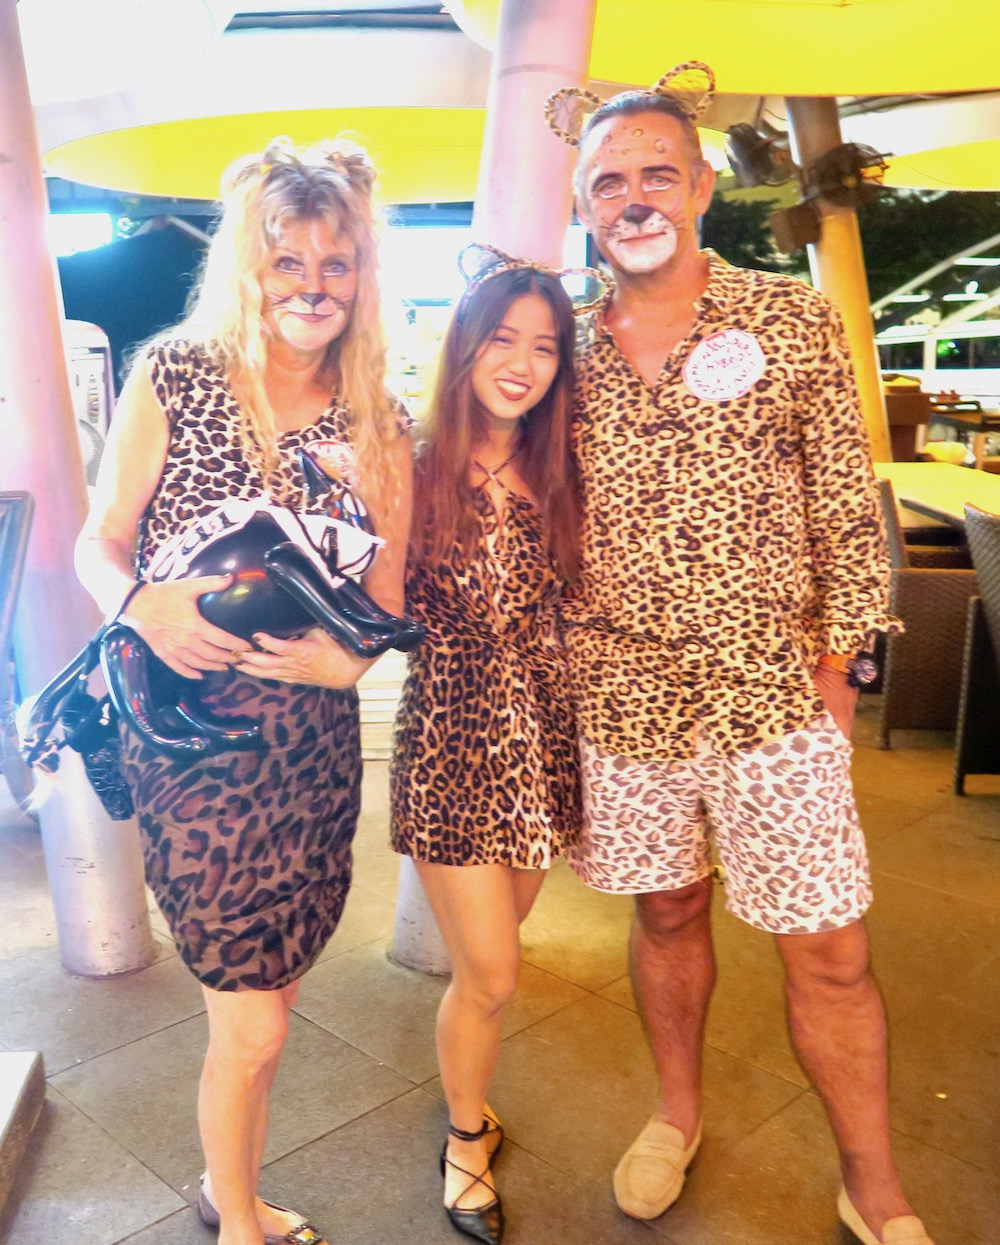 Three big cats at Halloween at Clarke Quay Singapore |curlytraveller.com